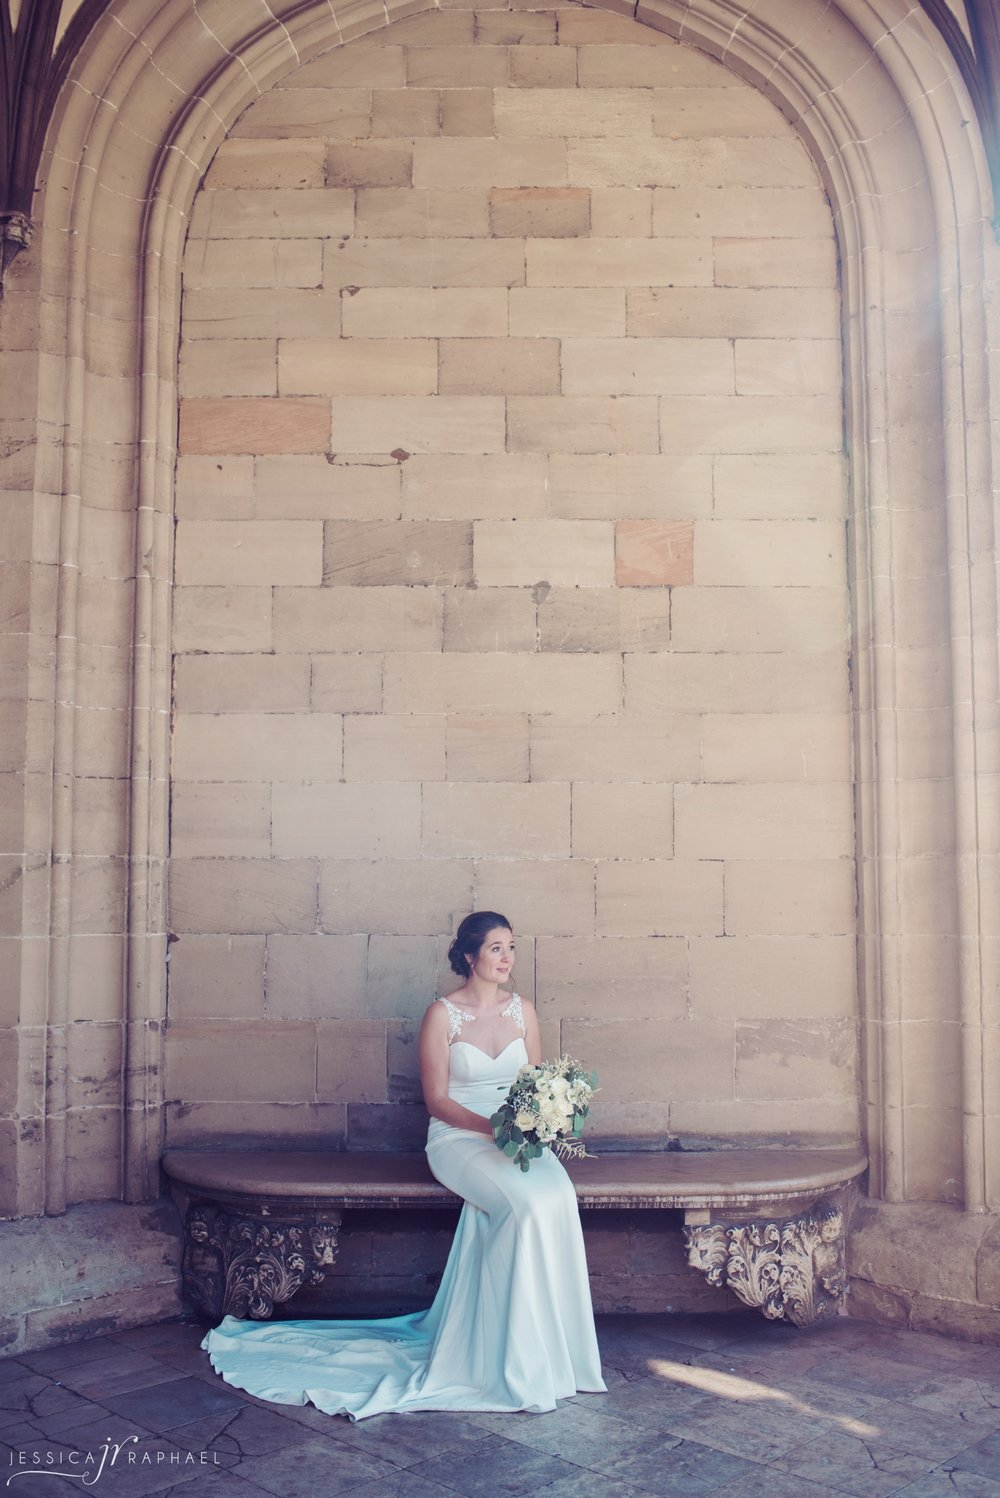 warwick-castle-weddings-jessica-raphael-photography